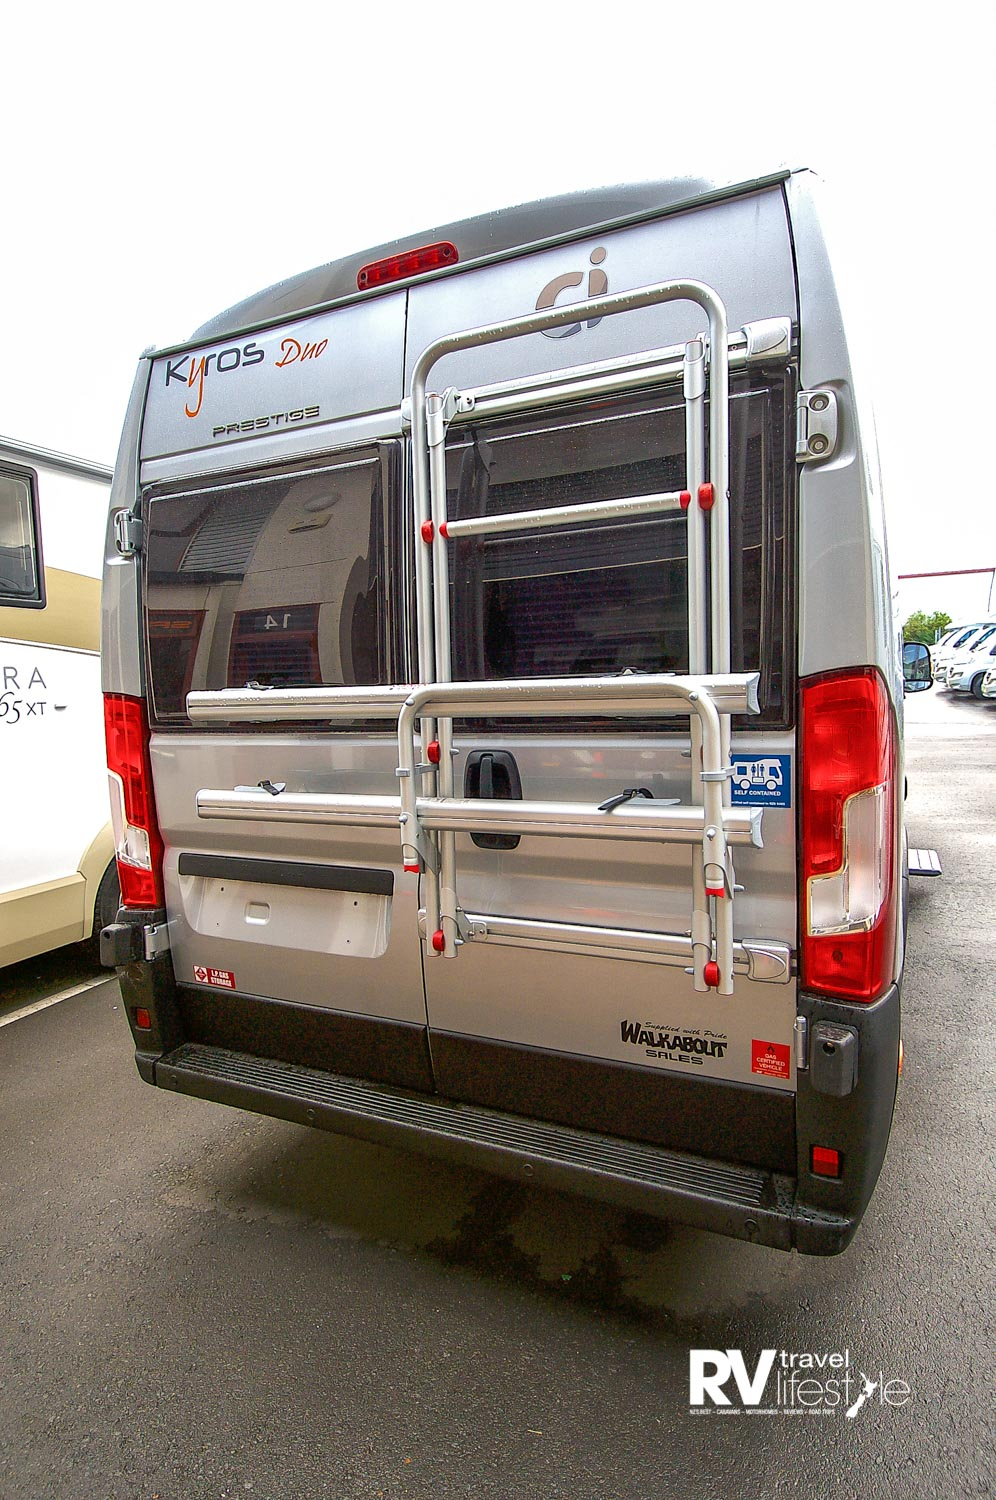 Two rear opening doors, bike rack fitted, and only 6360mm long, 2050mm wide, and 2810mm high – you can drive this like a car